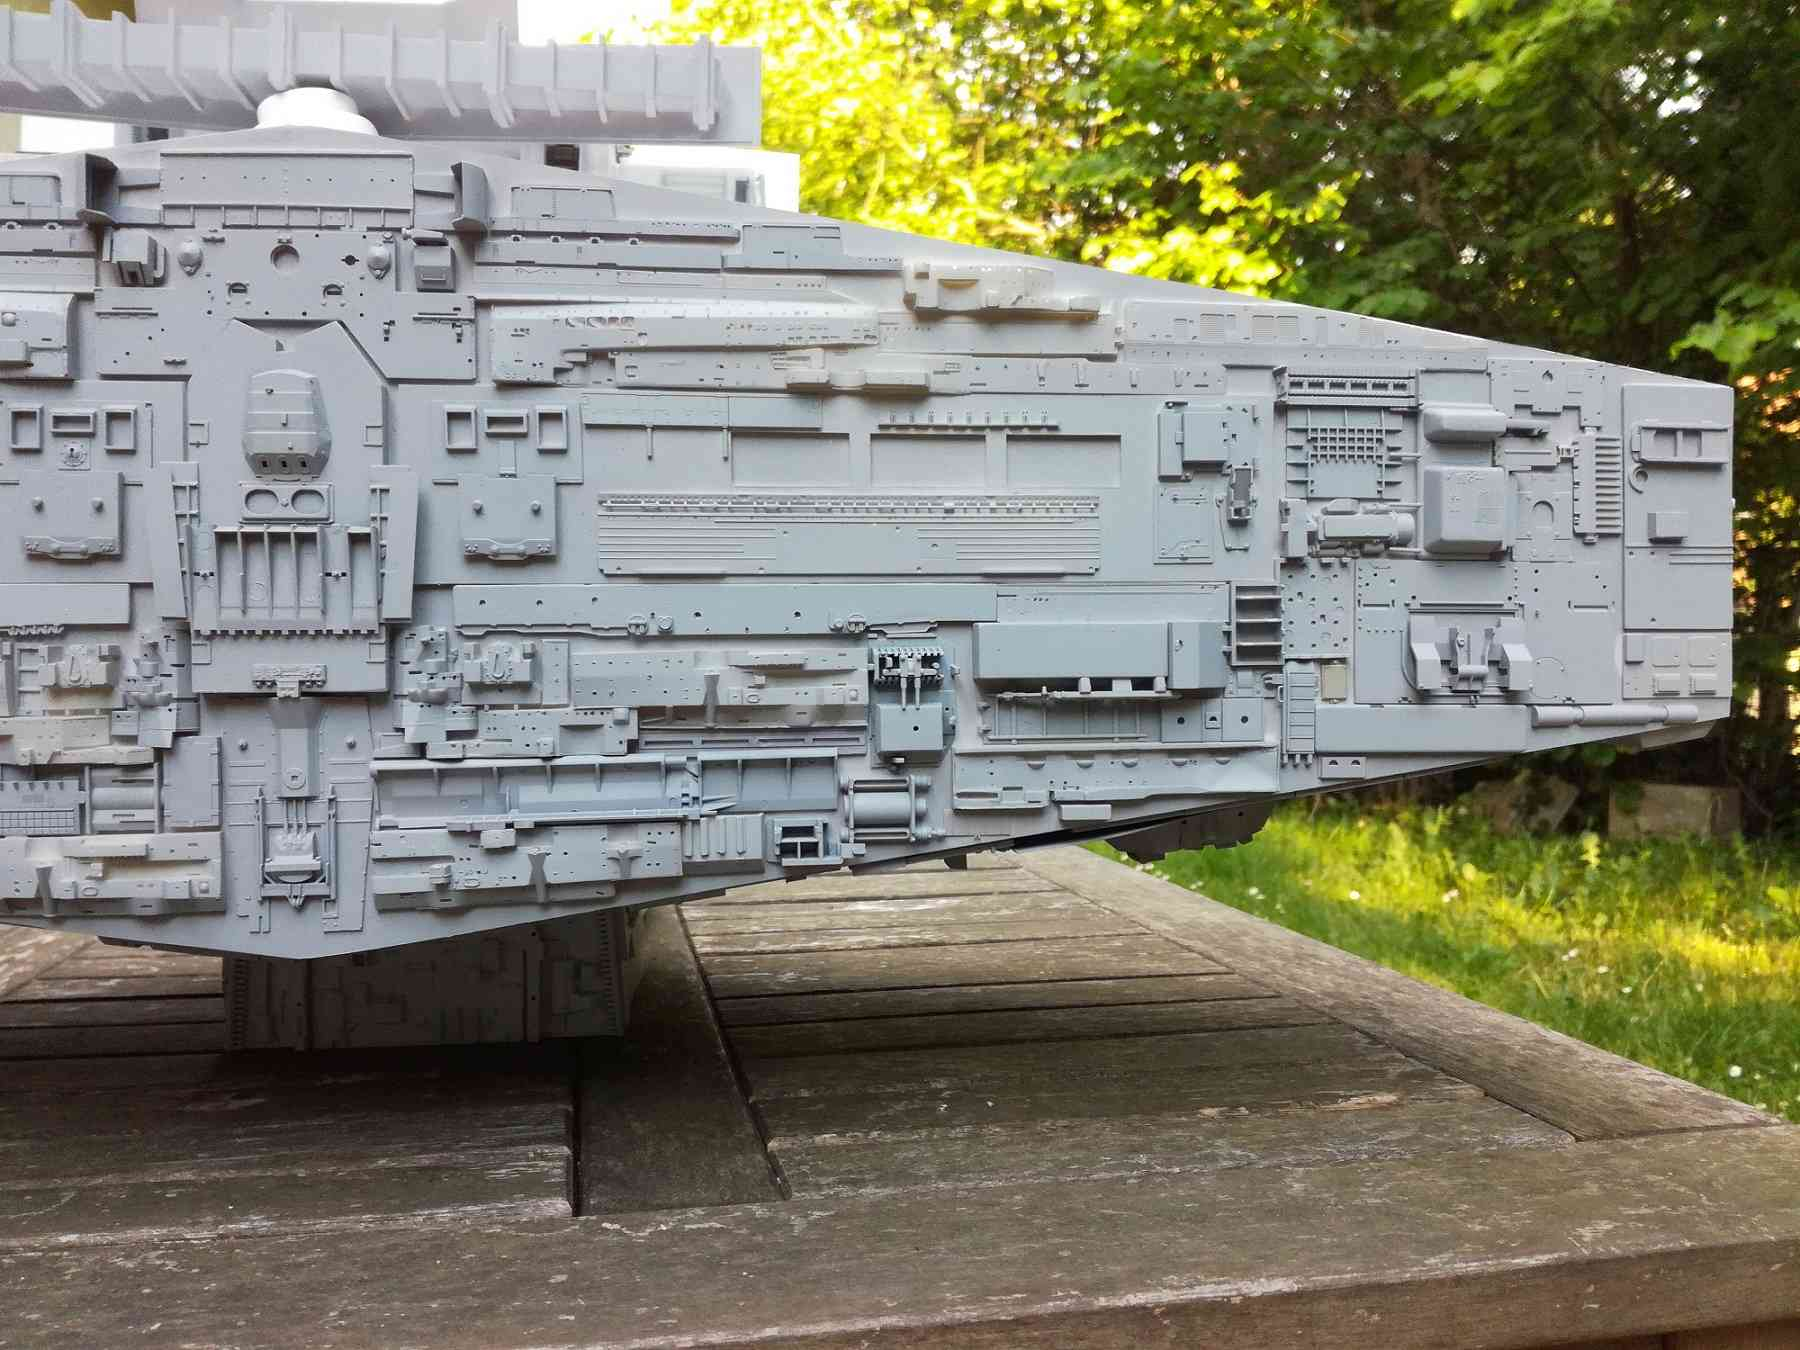 Star destroyer et Falcon - Page 3 610